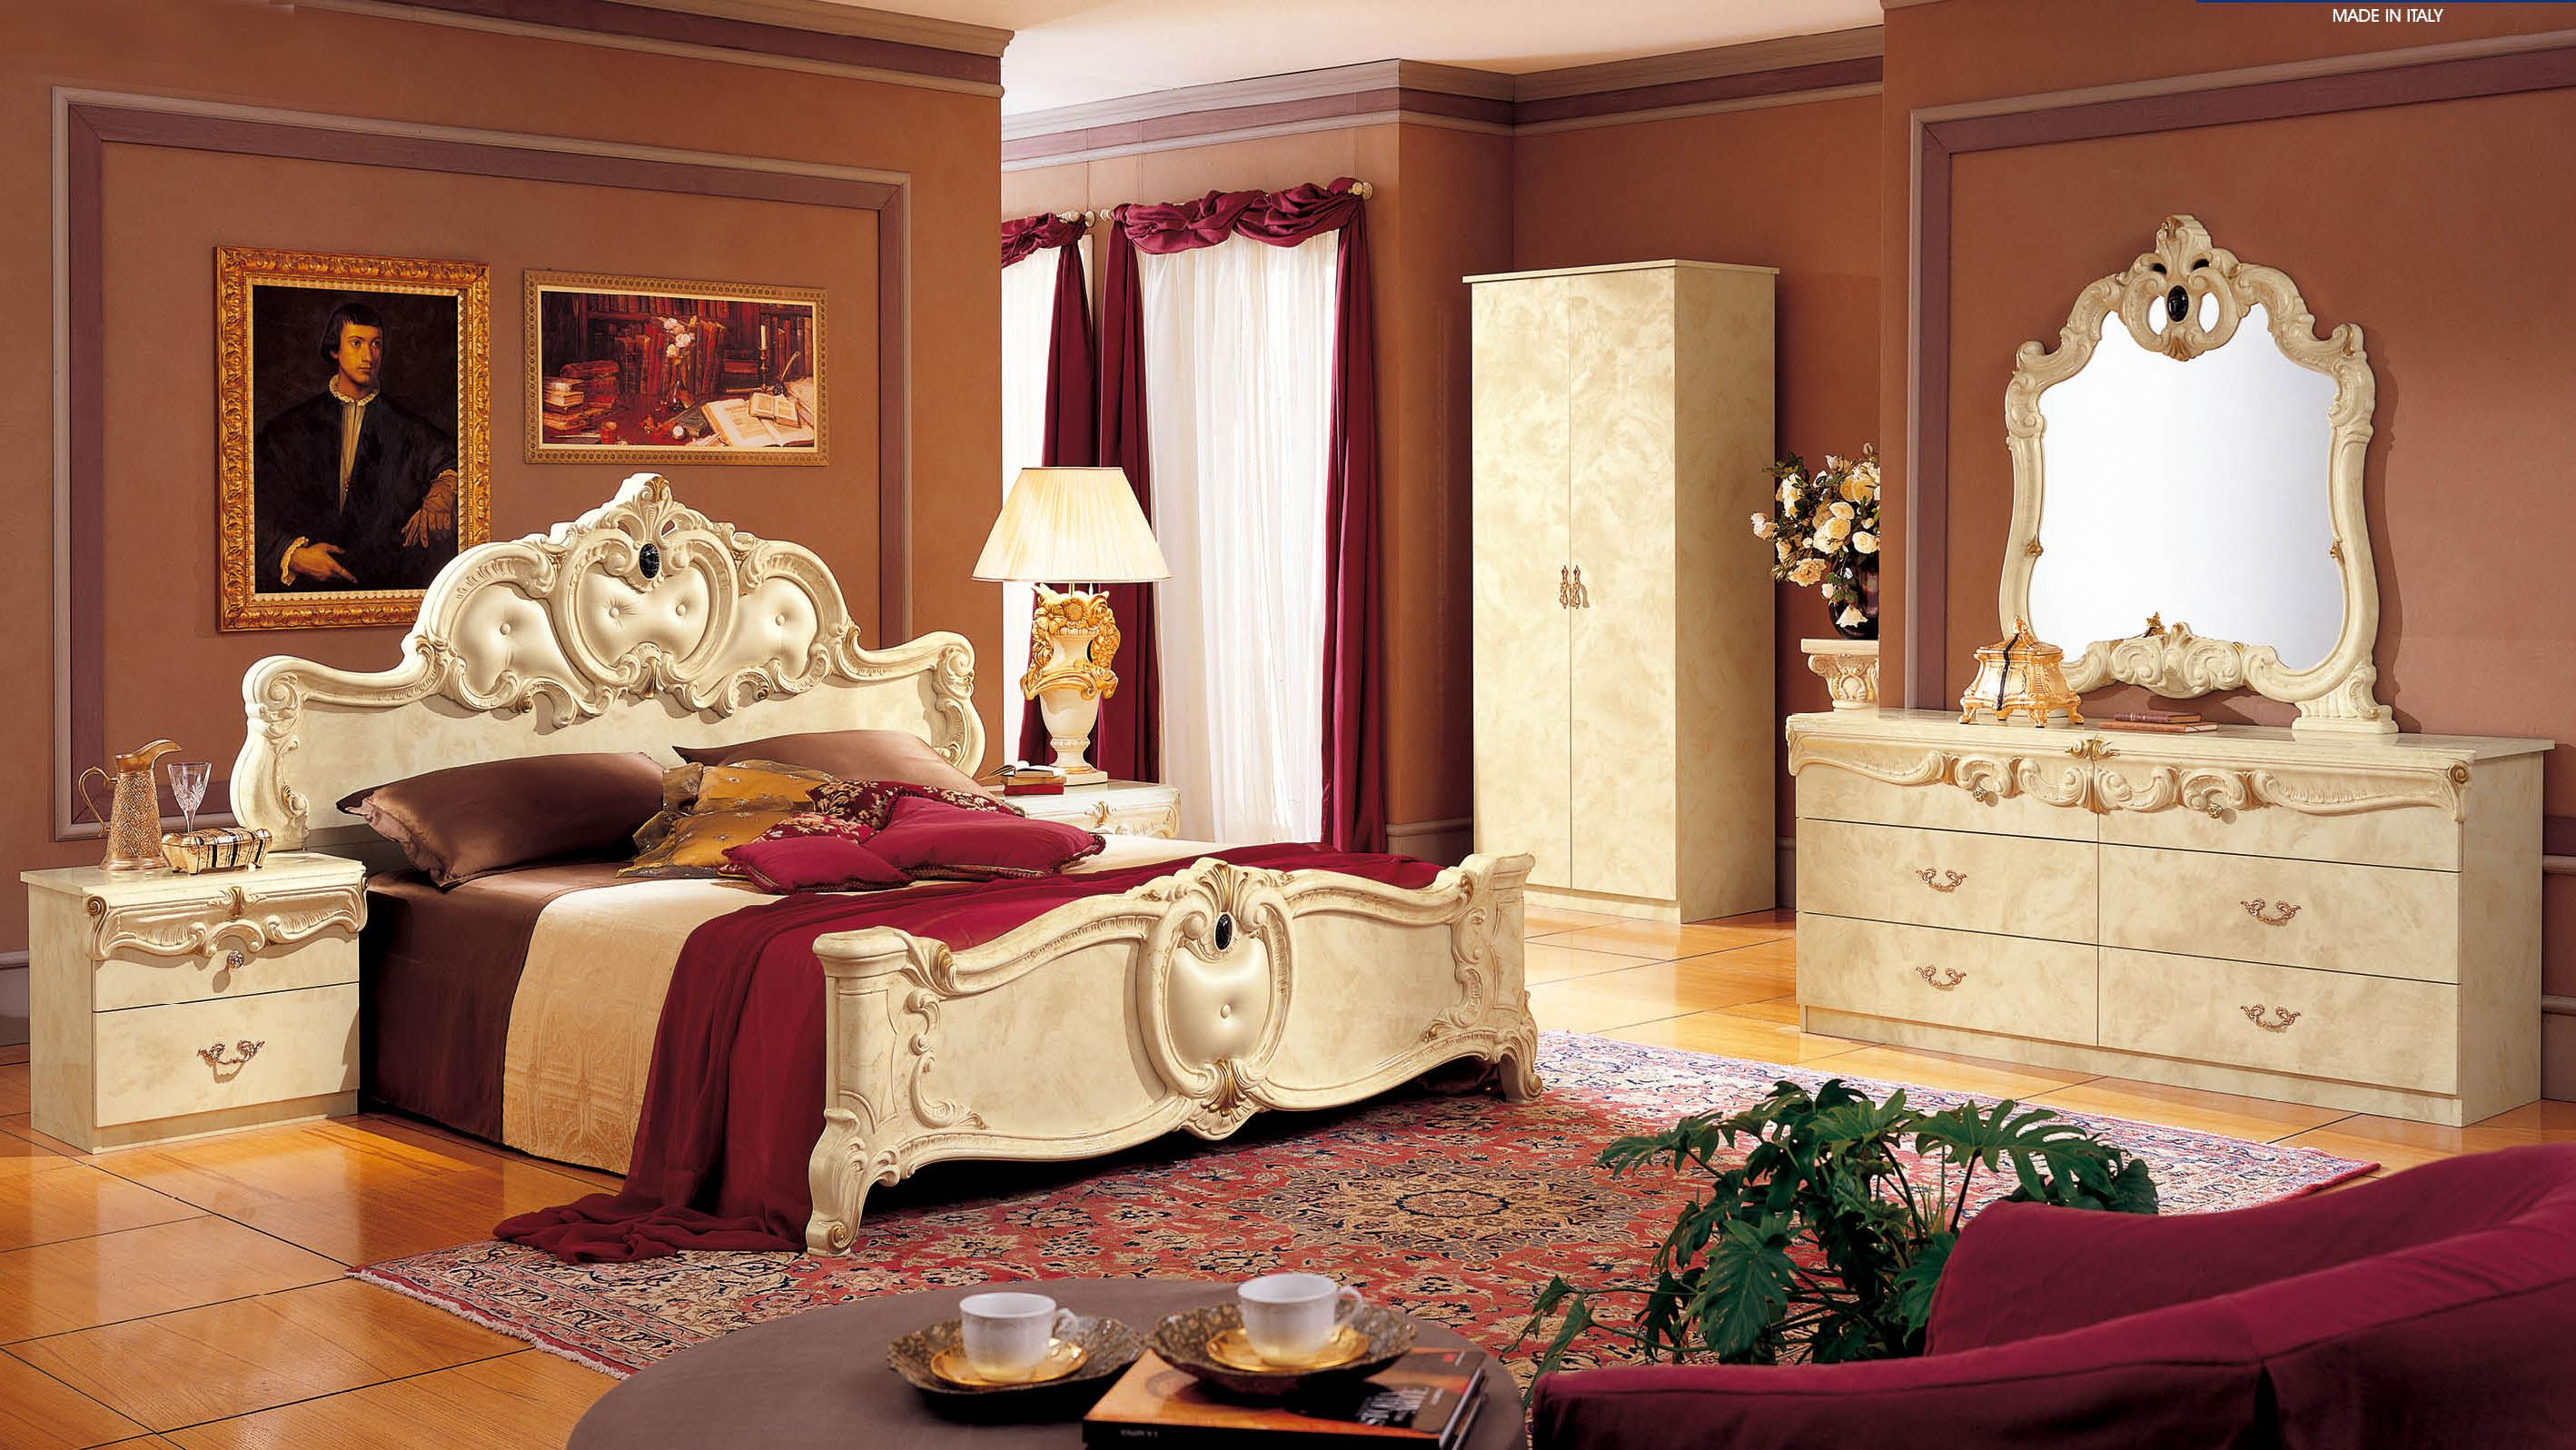 Made in italy leather high end bedroom furniture glendale california esf barocco No dresser in master bedroom